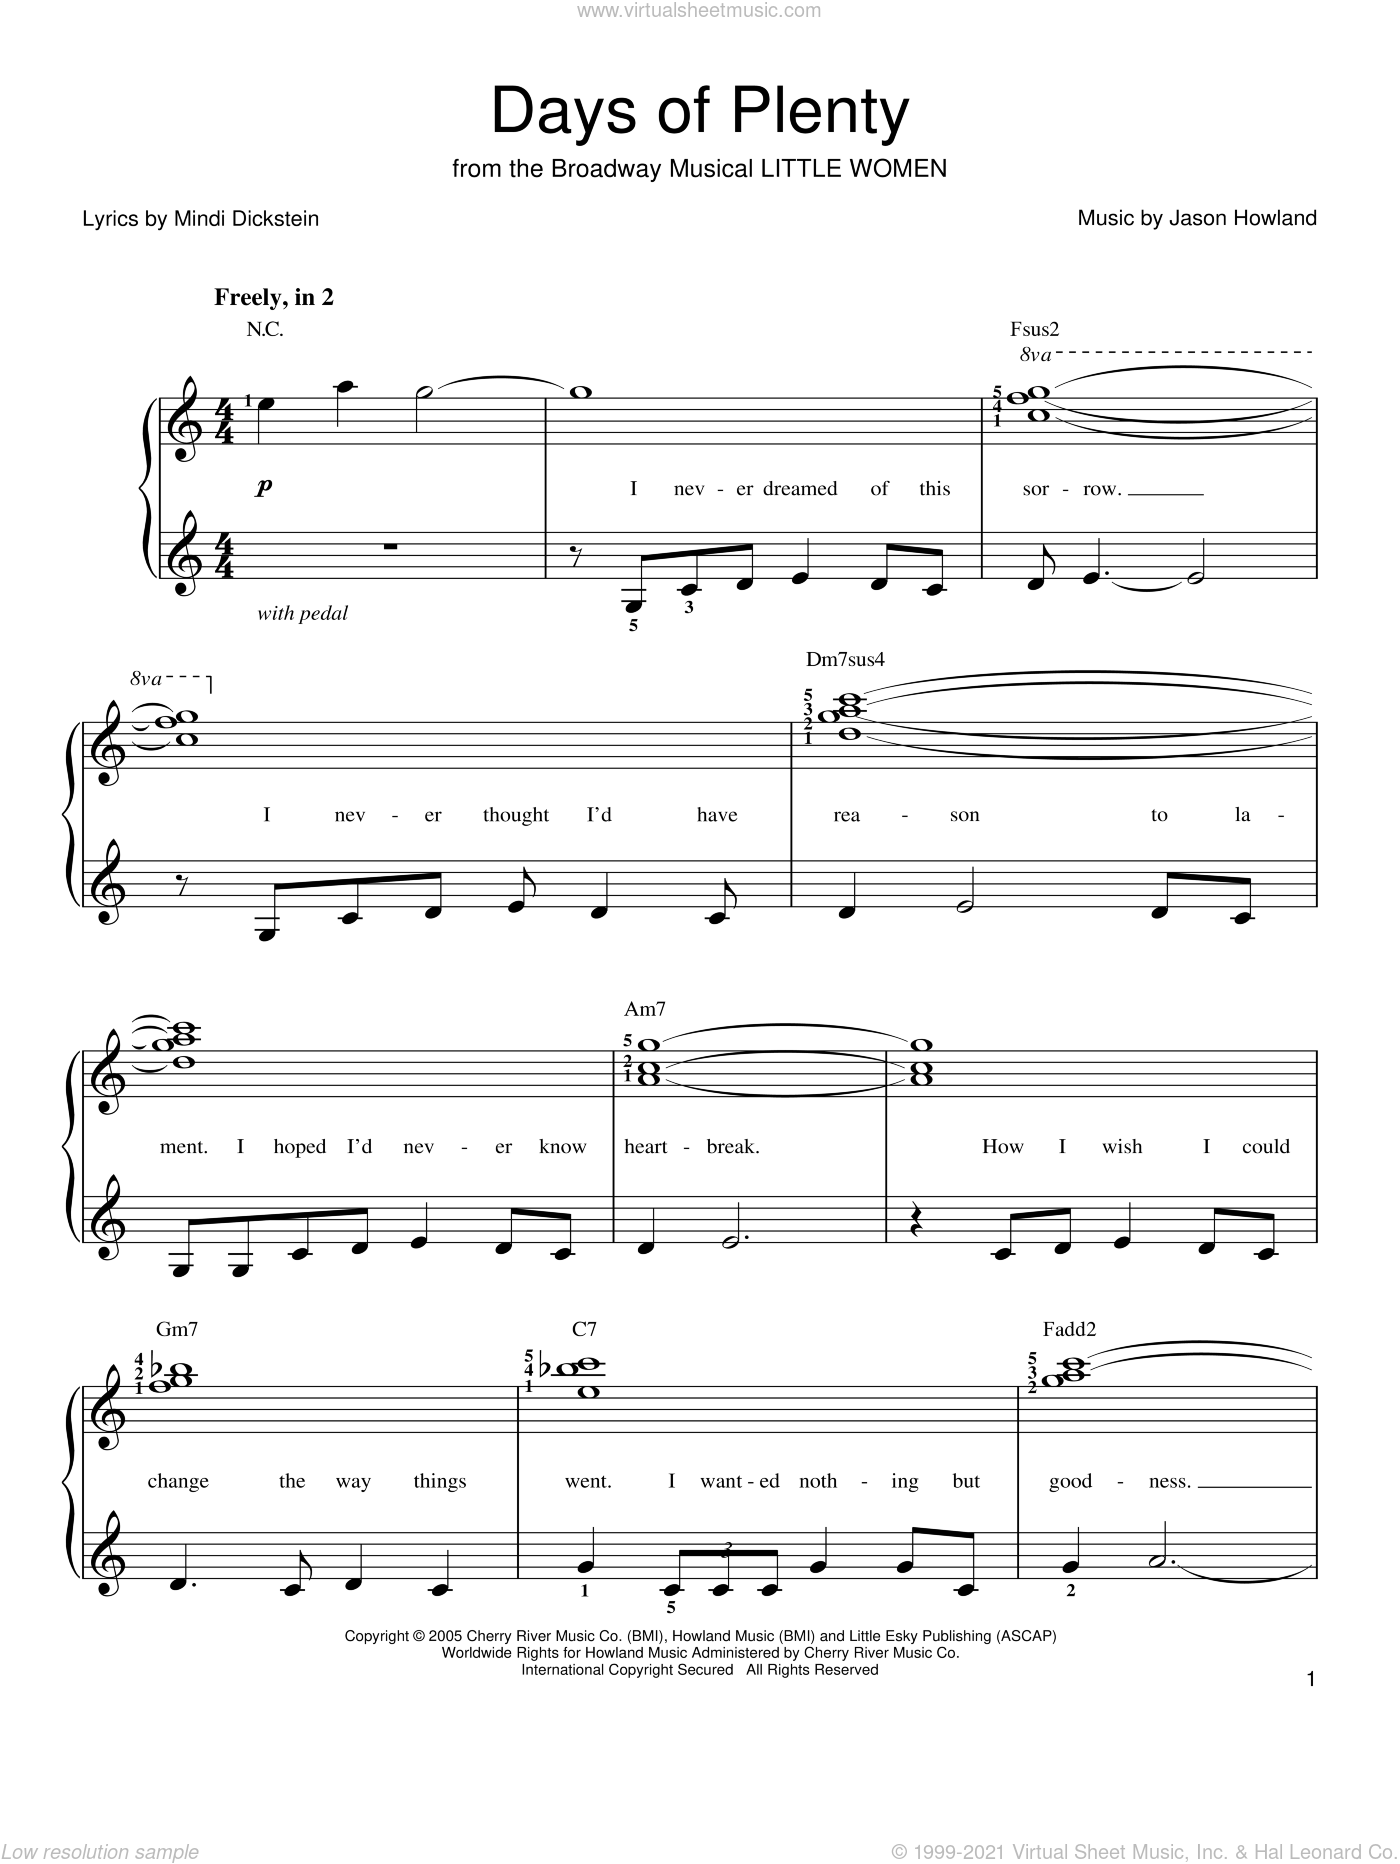 Days Of Plenty sheet music for piano solo (chords) by Jason Howland